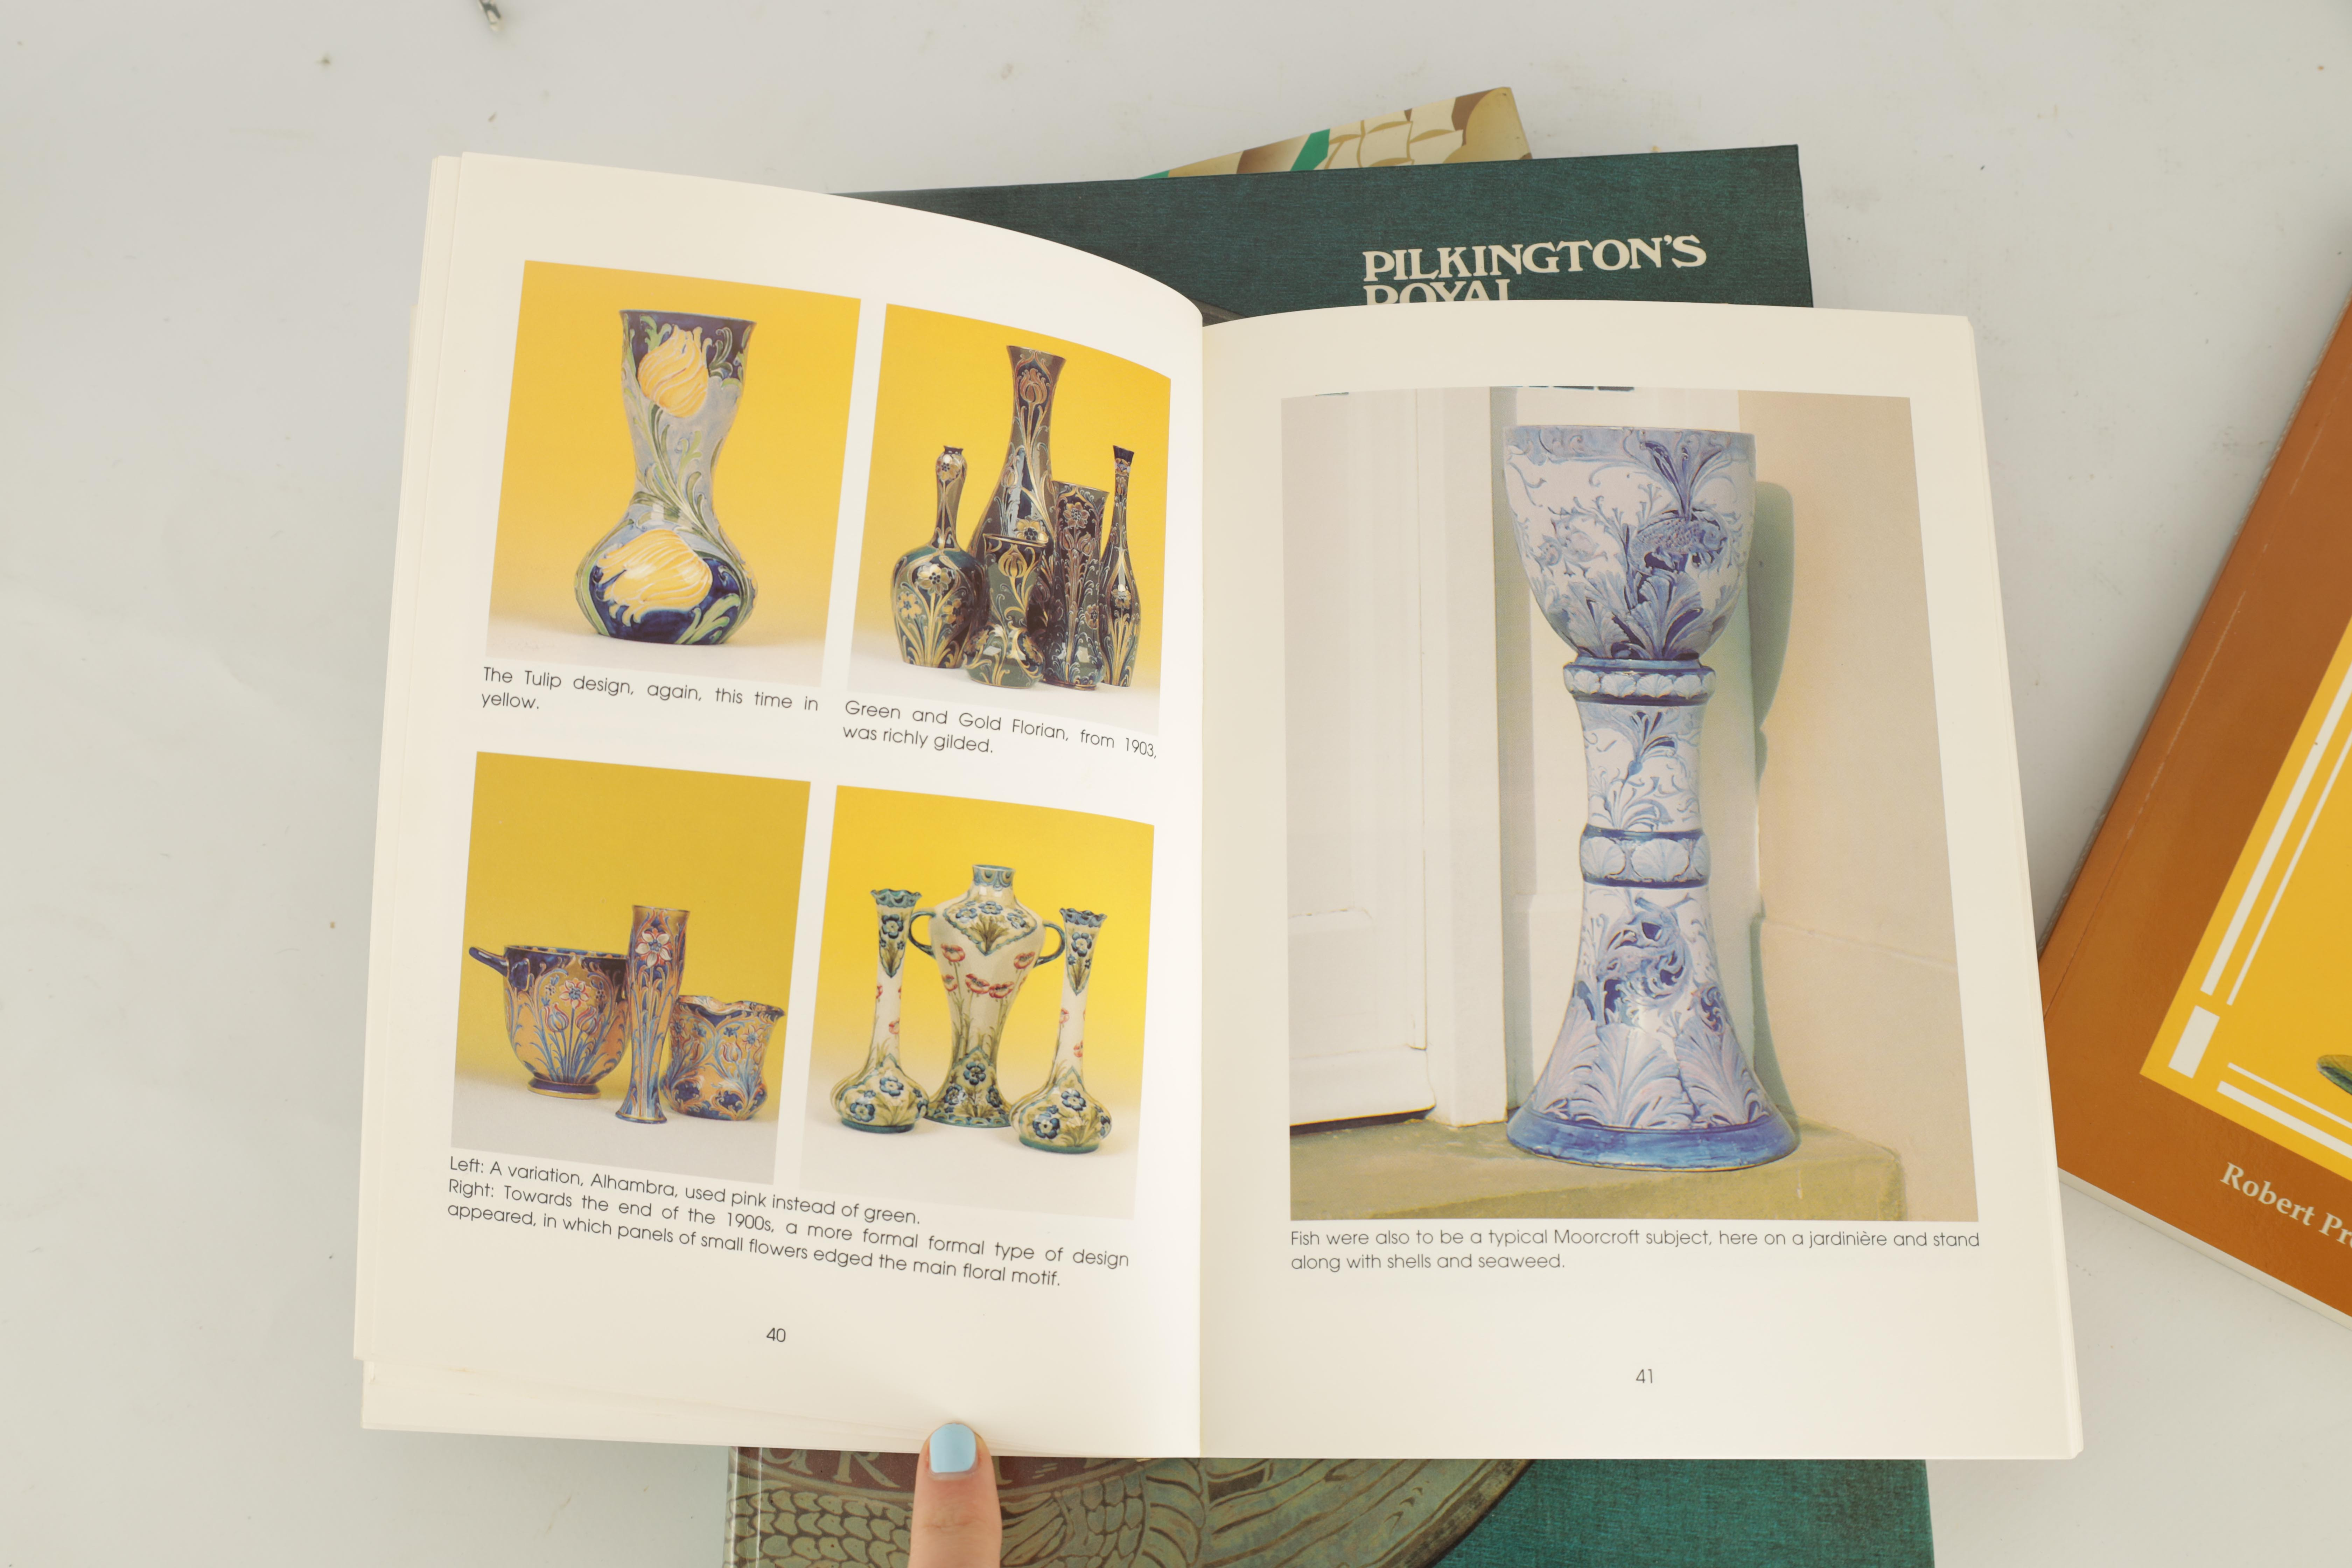 A COLLECTION OF EIGHT CERAMIC REFERENCE BOOKS including Poole pottery by Lesley Haward edited by - Image 4 of 9